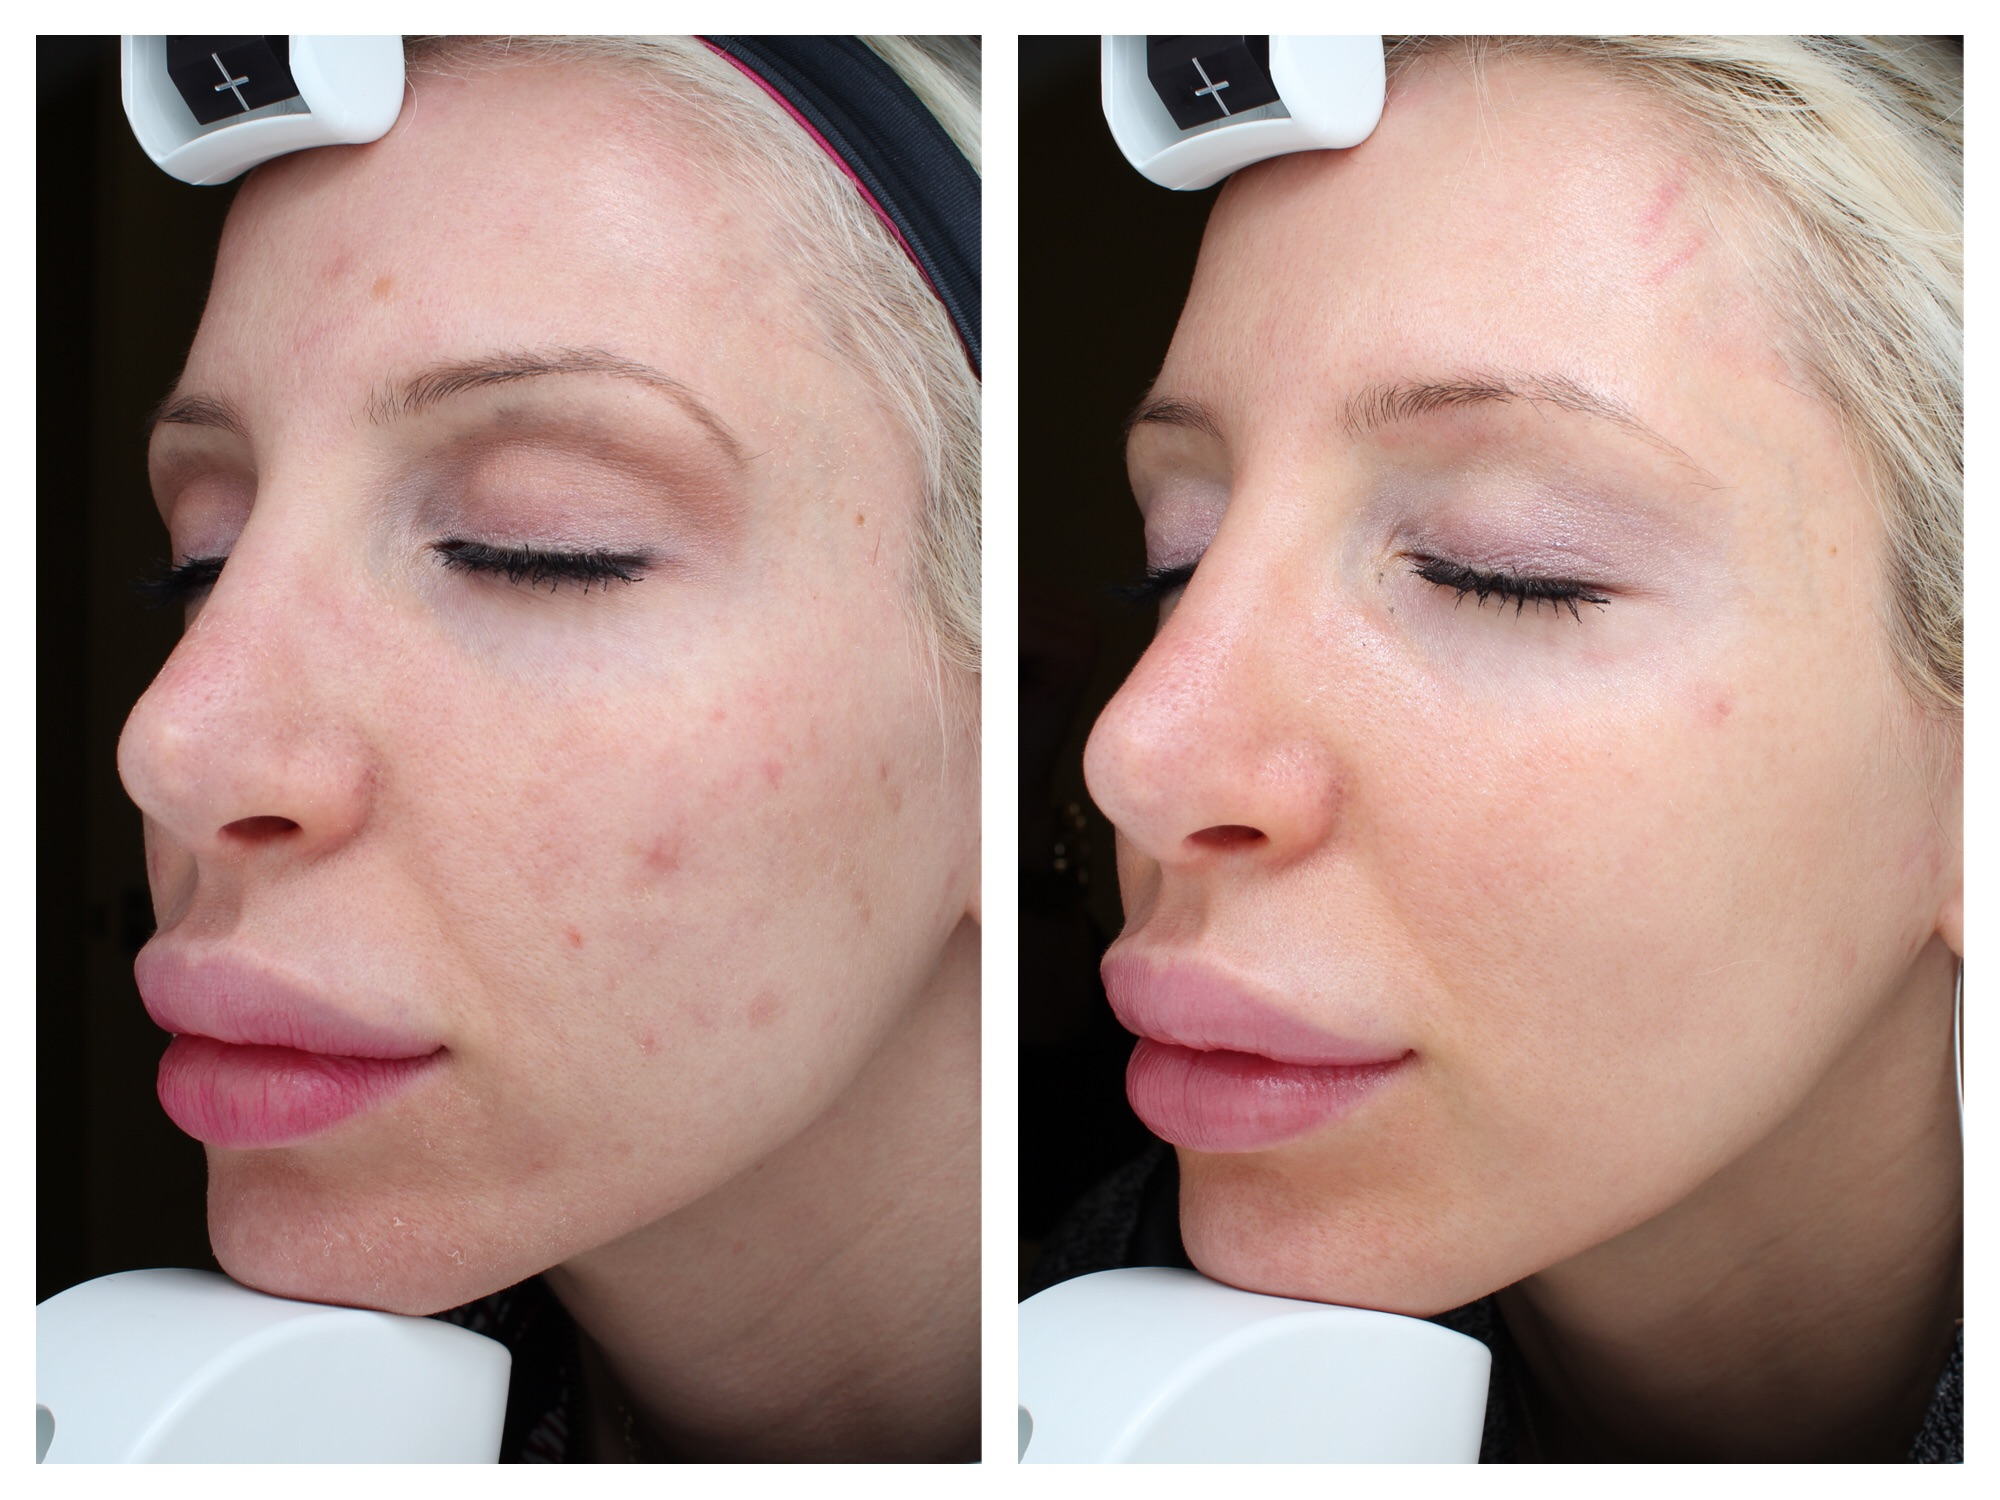 Before And After My Halo Laser Treatment Results Med E Spa